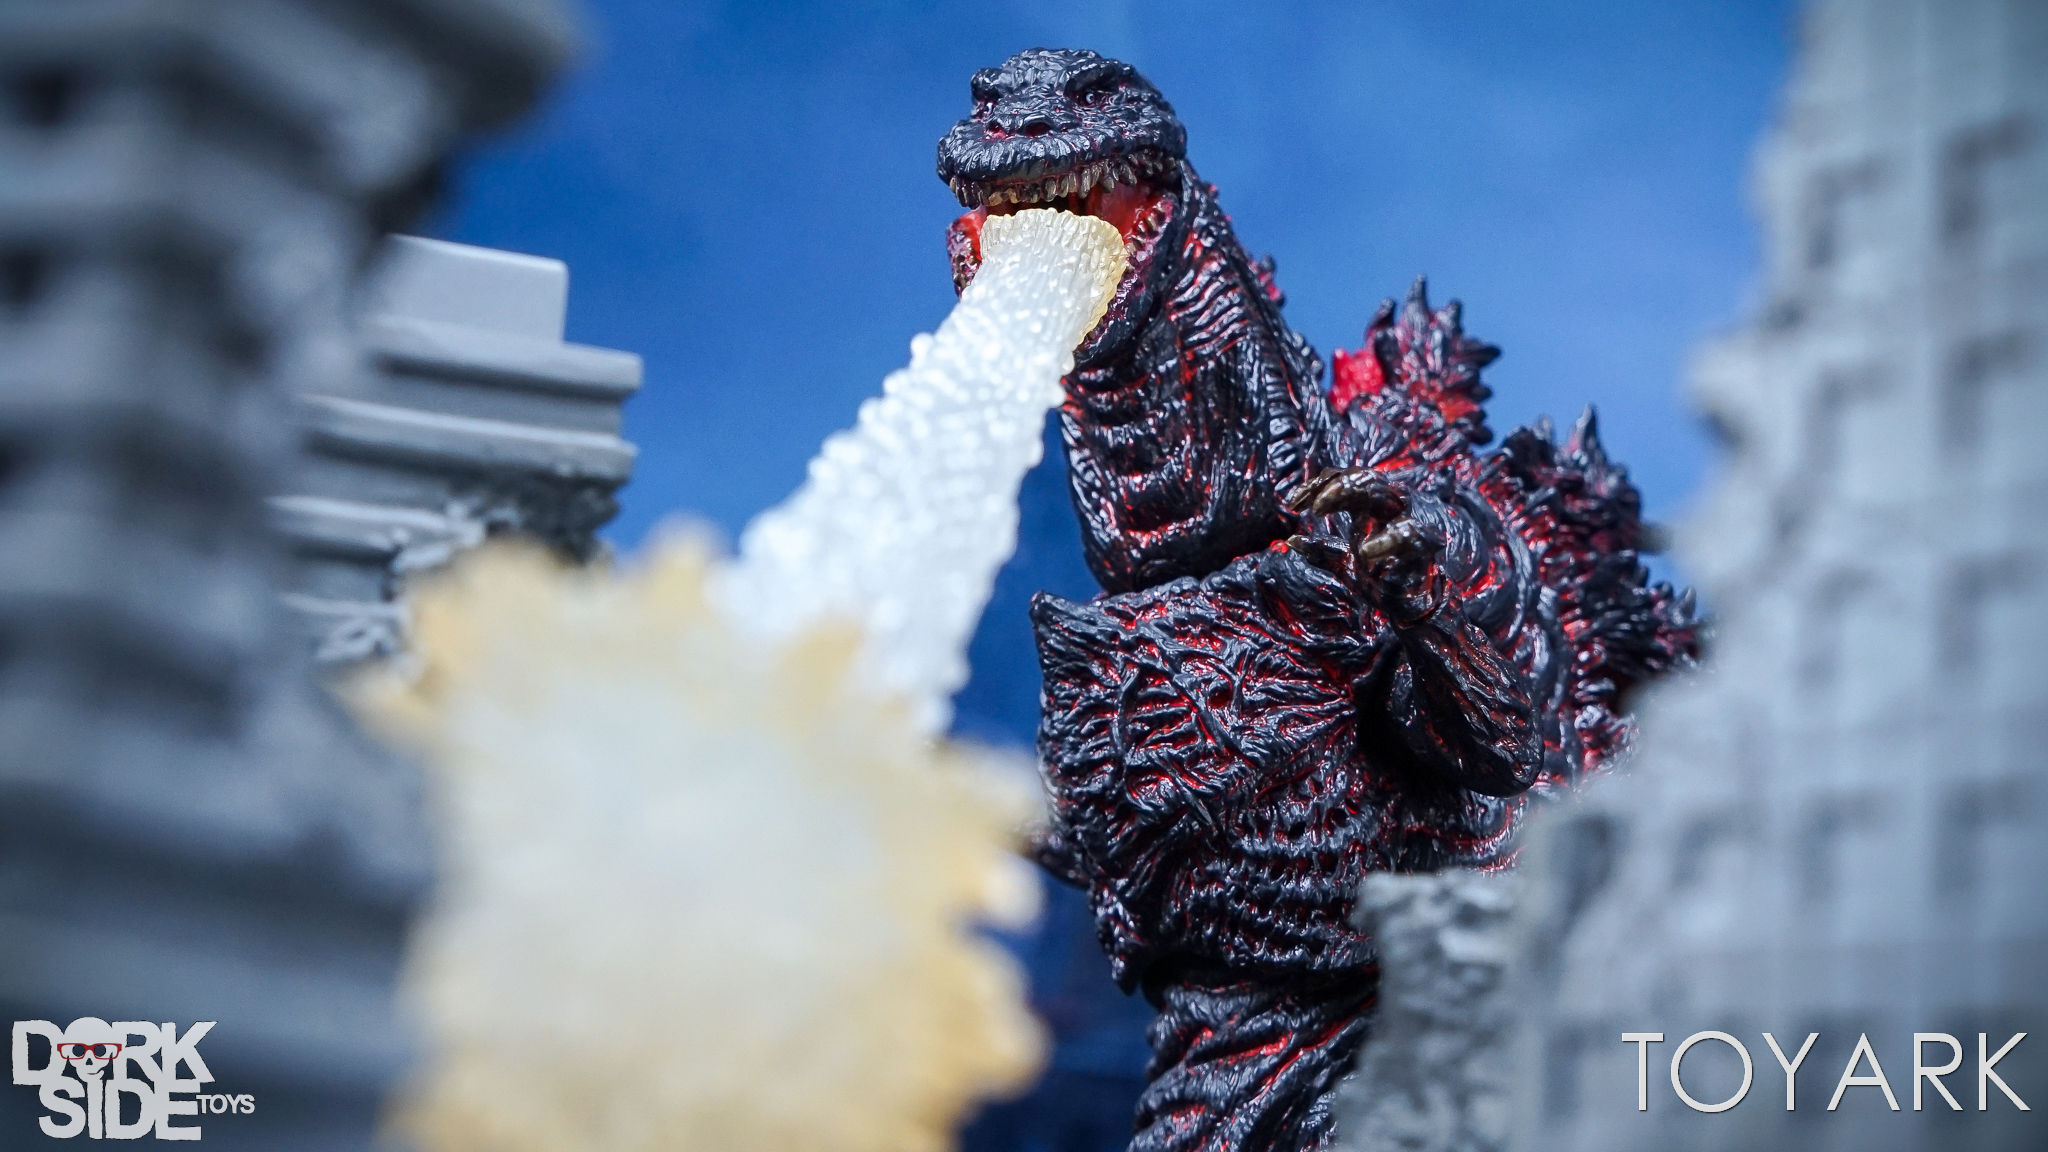 http://news.toyark.com/wp-content/uploads/sites/4/2017/05/Shin-Godzilla-Figure-NECA-033.jpg